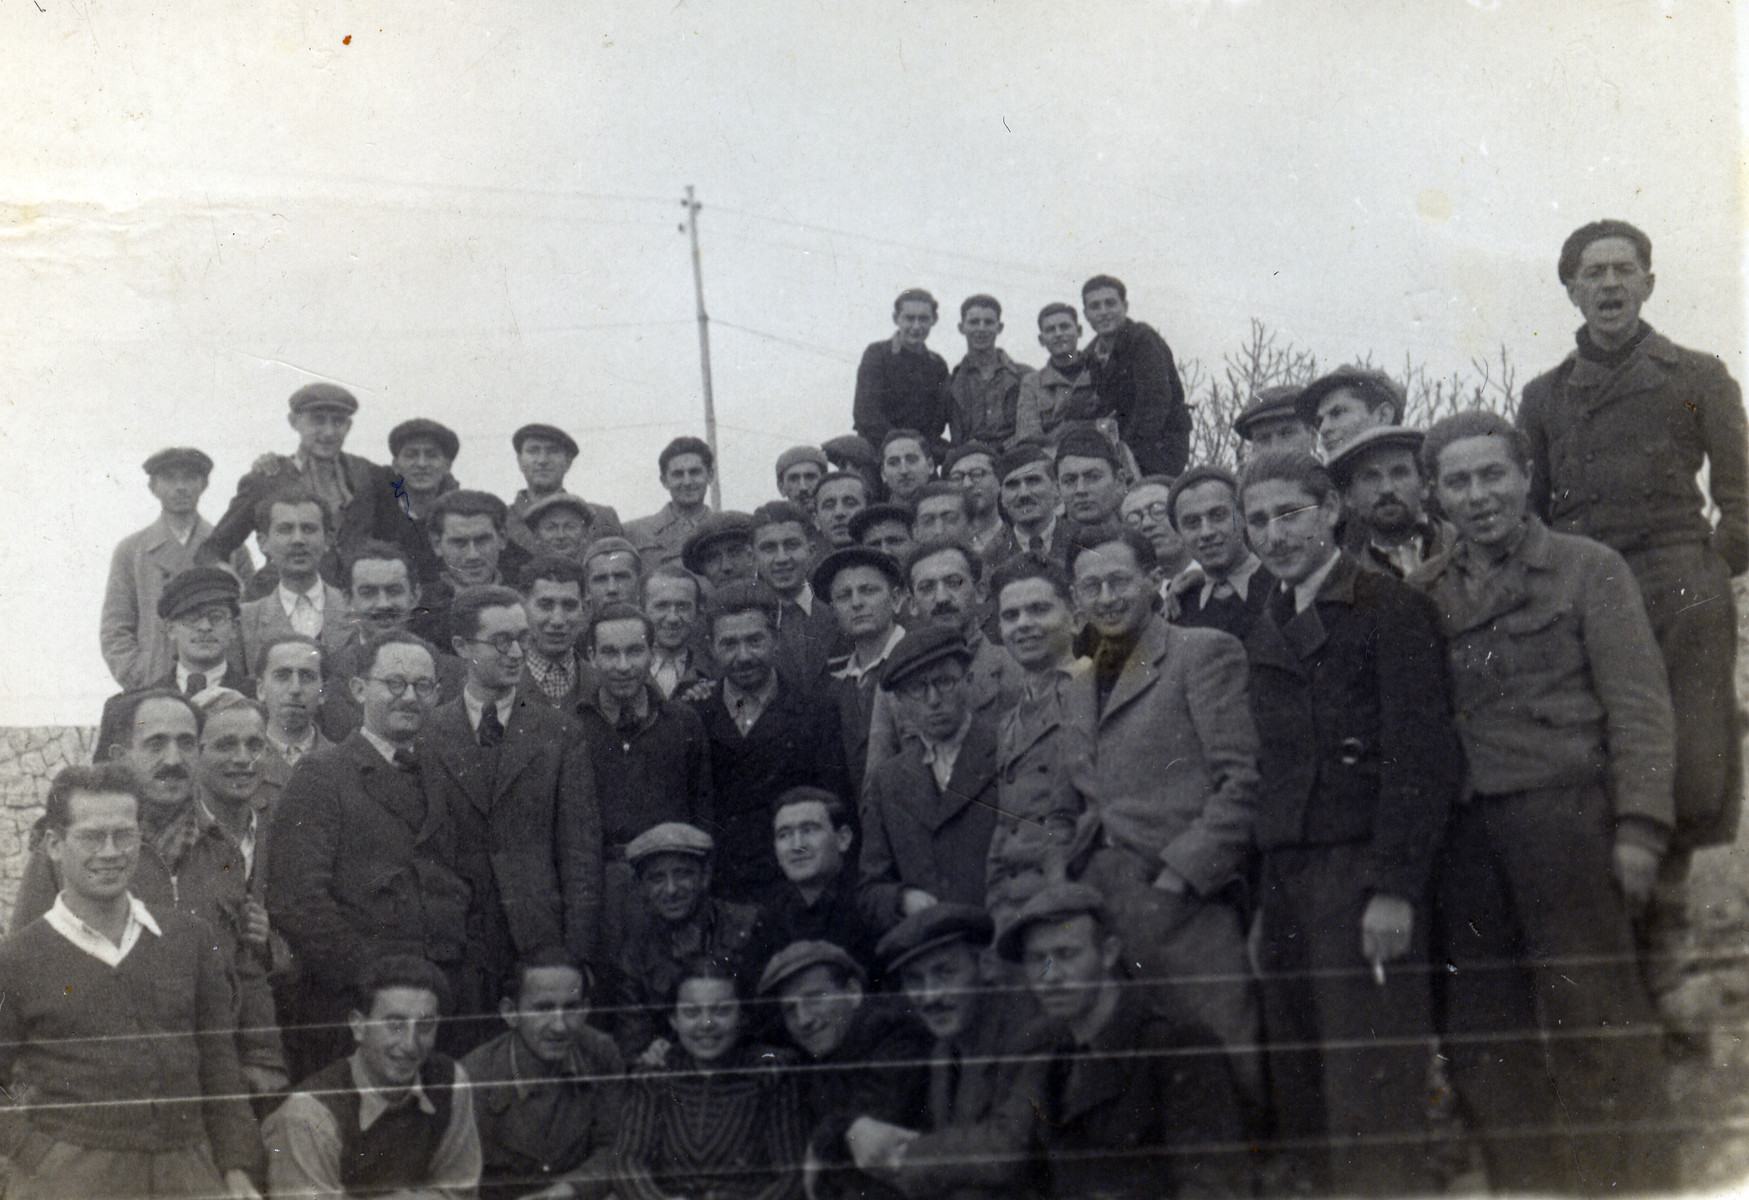 Refugees from the sunken Pentcho pose for a group photo either on the island of Kamilonissi or Rhodes.